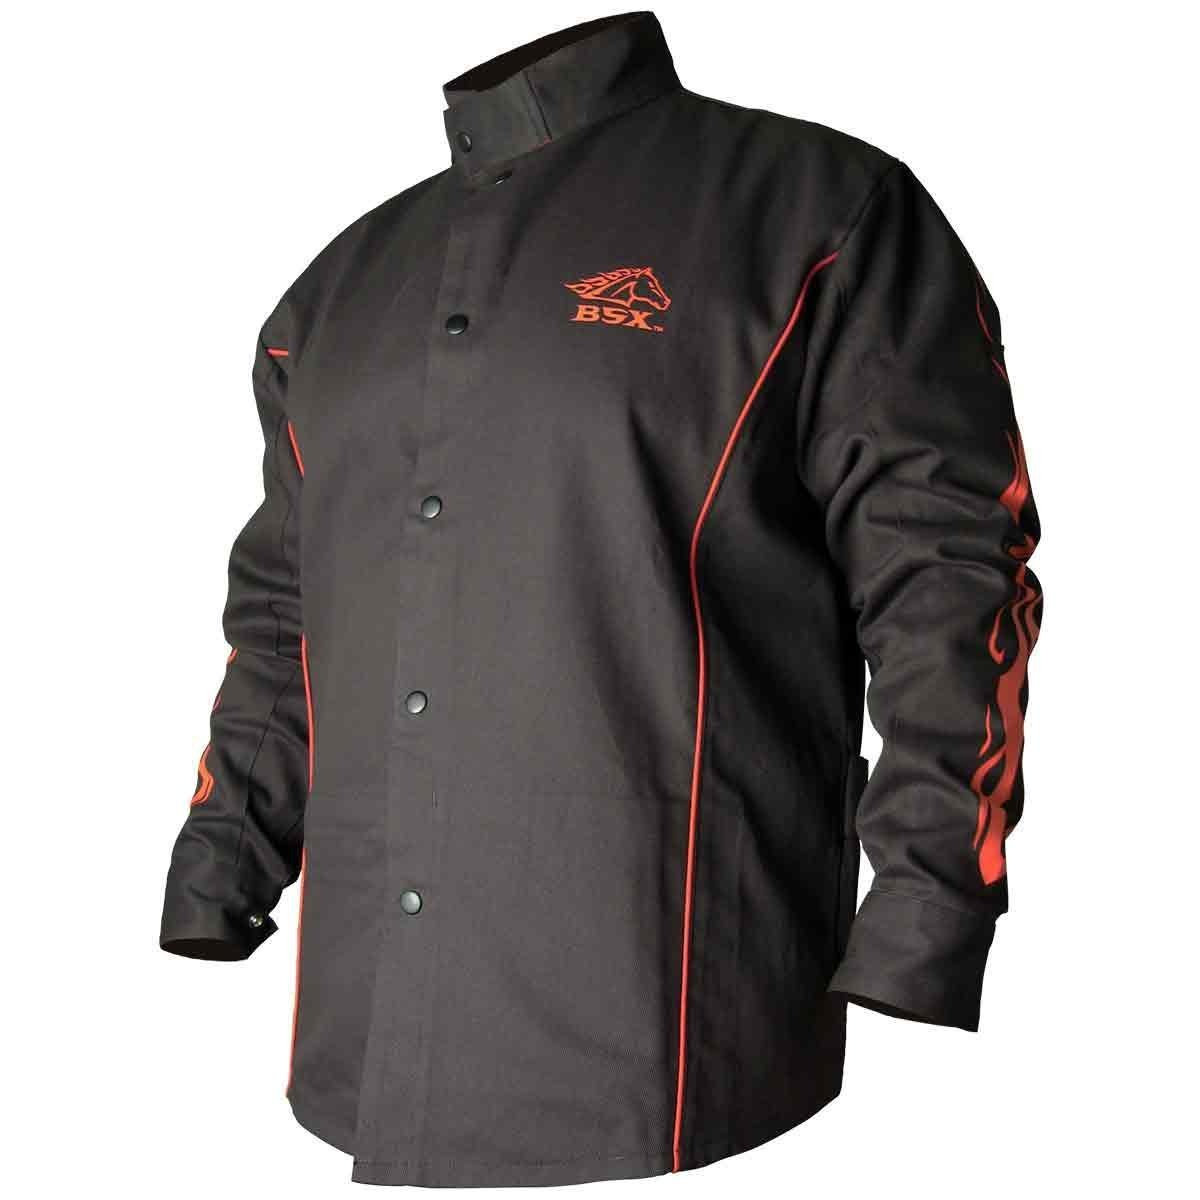 BSX Flame-Resistant Welding Jacket - Black with Red Flames, Size 2X-Large by Revco